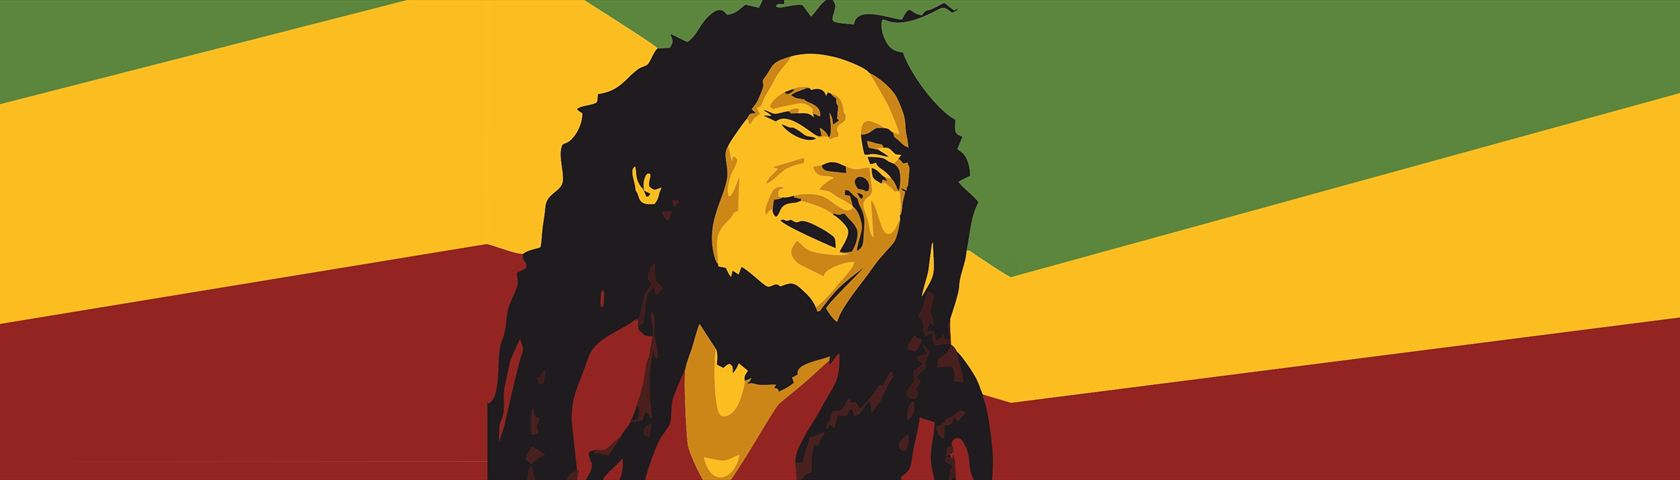 Bob Marley Images Wallpaperfusion By Binary Fortress